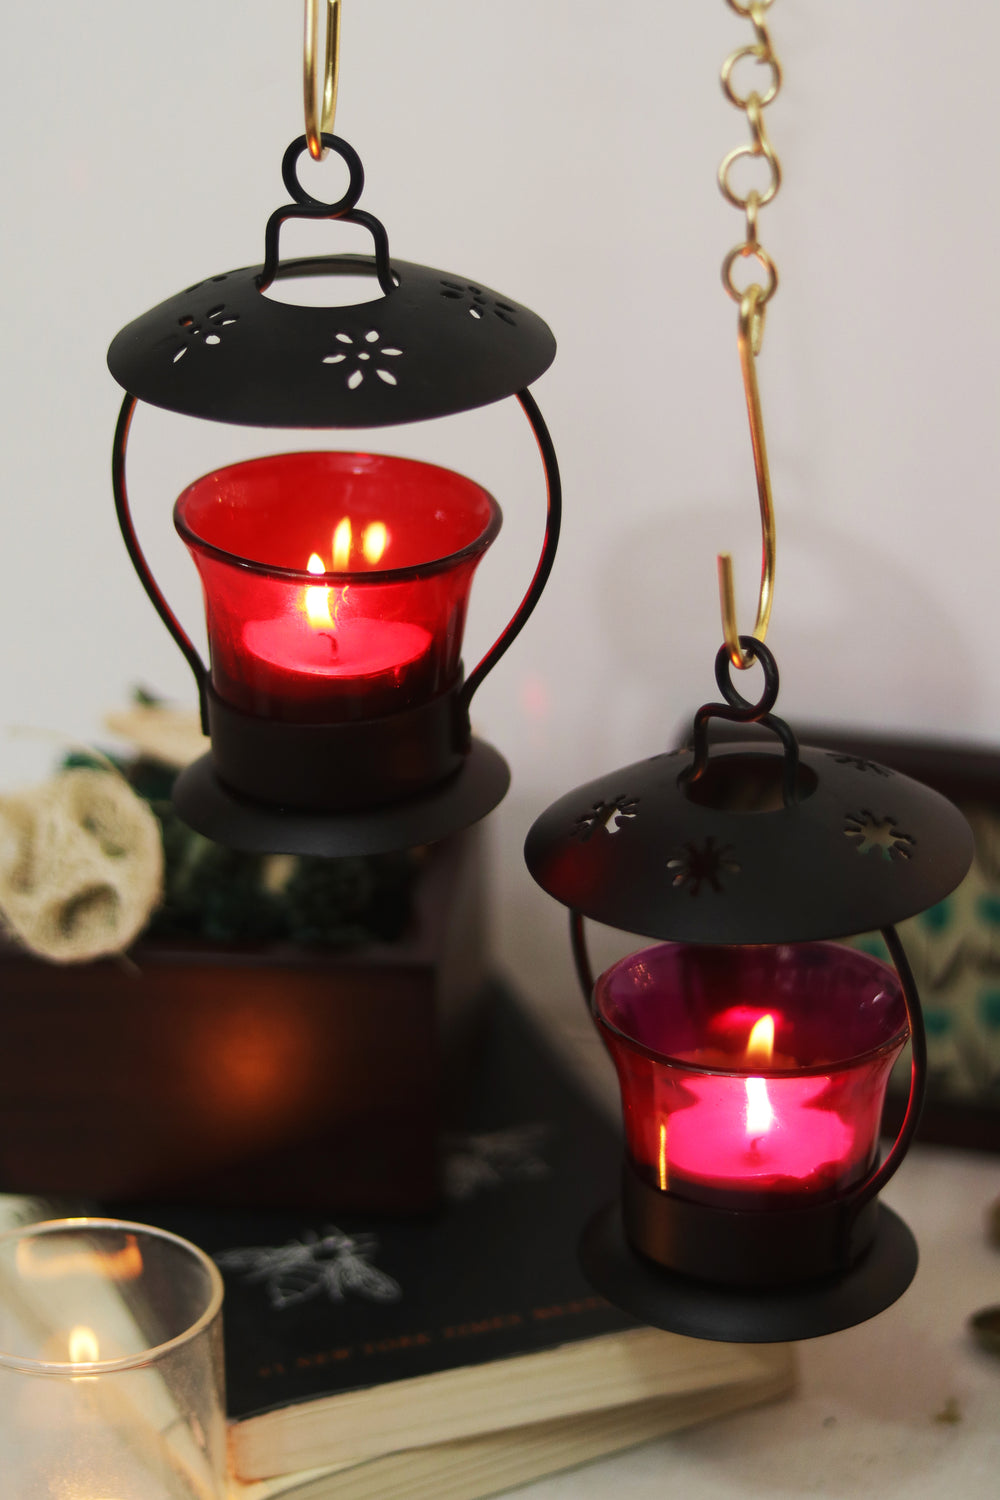 Open top pink decorative lantern for tea light candle holder L21